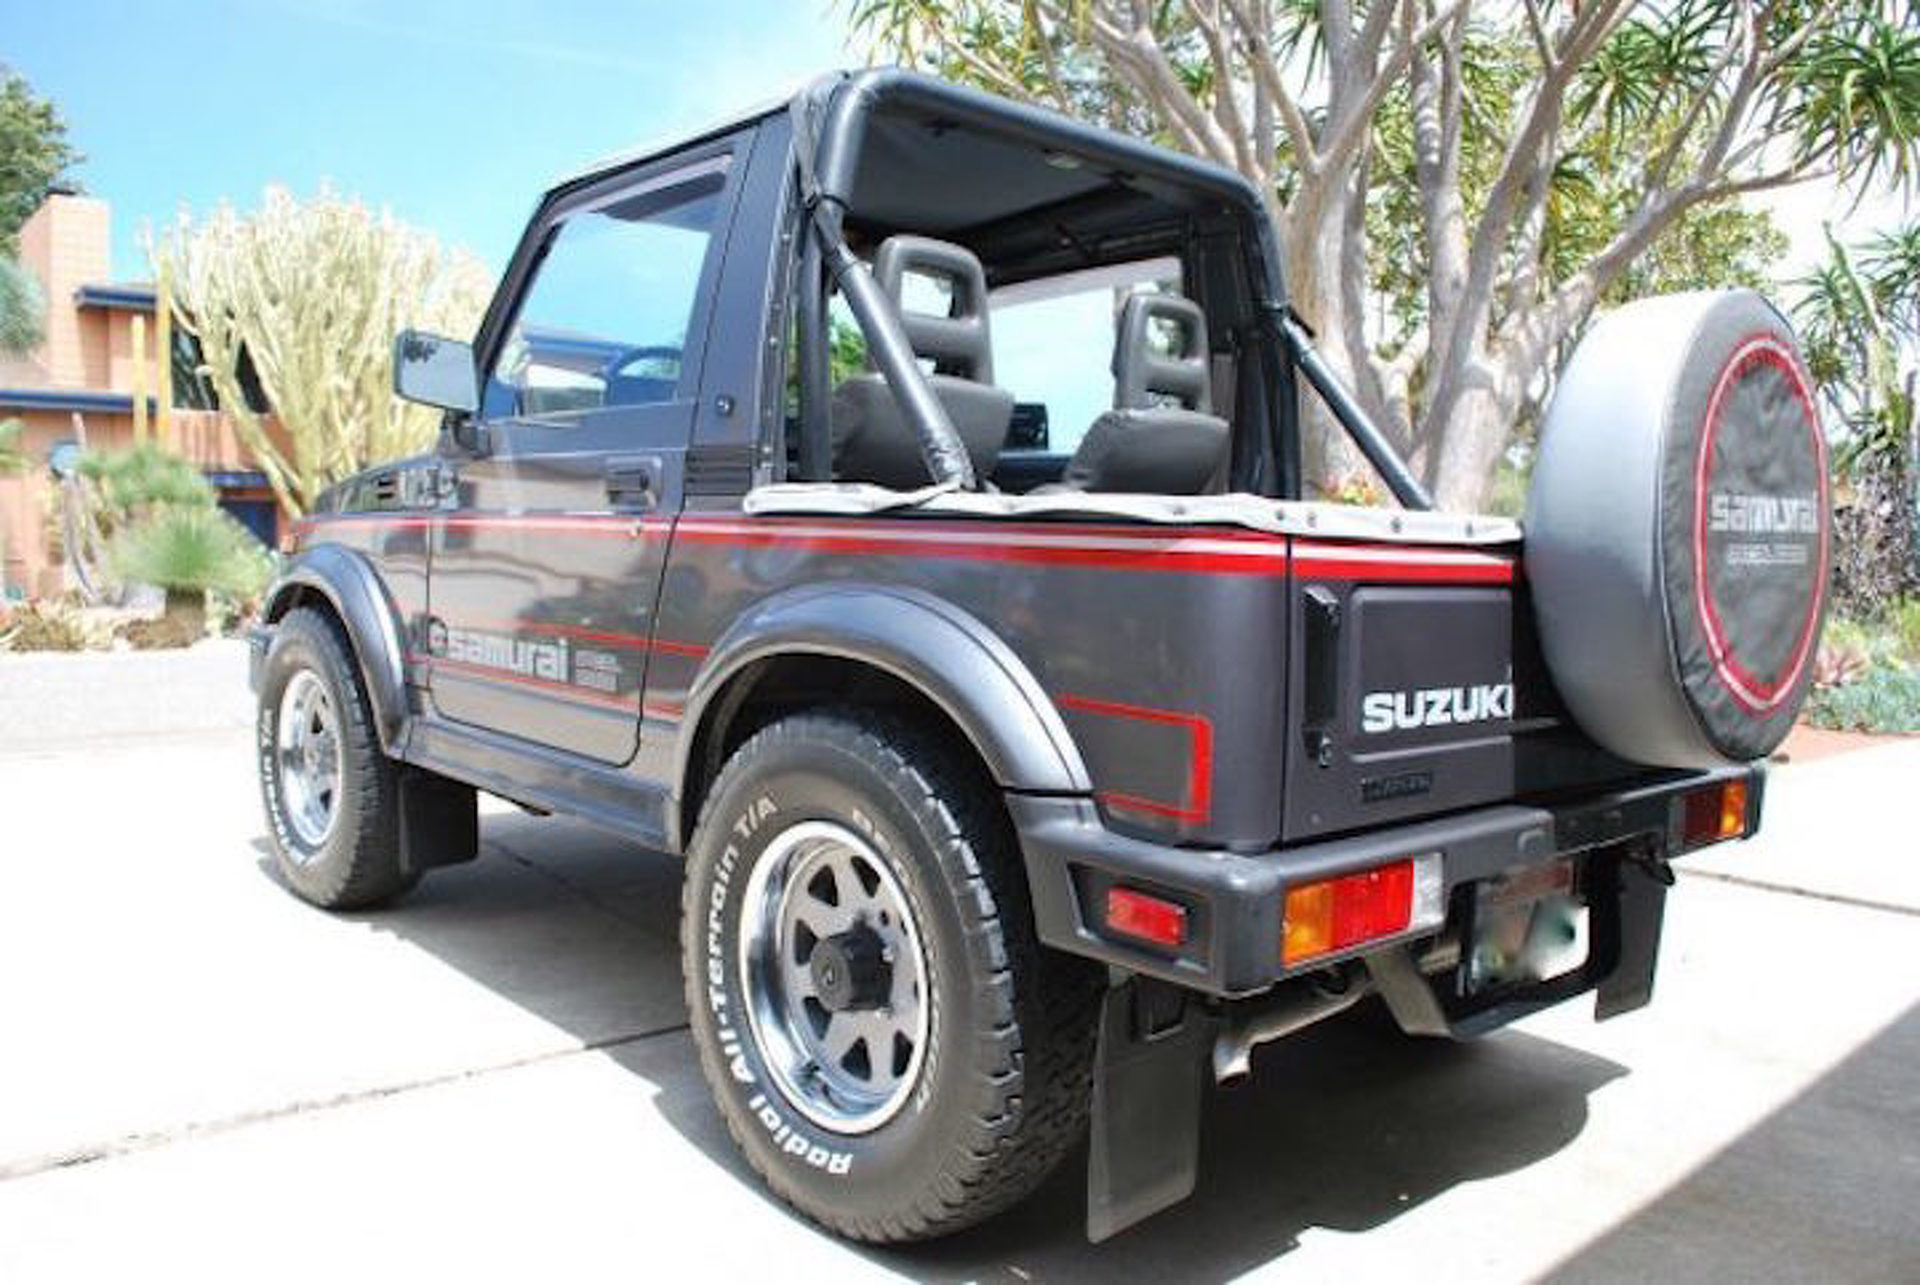 This '87 Suzuki Samurai is the 4x4 Collector's Jeep Alternative